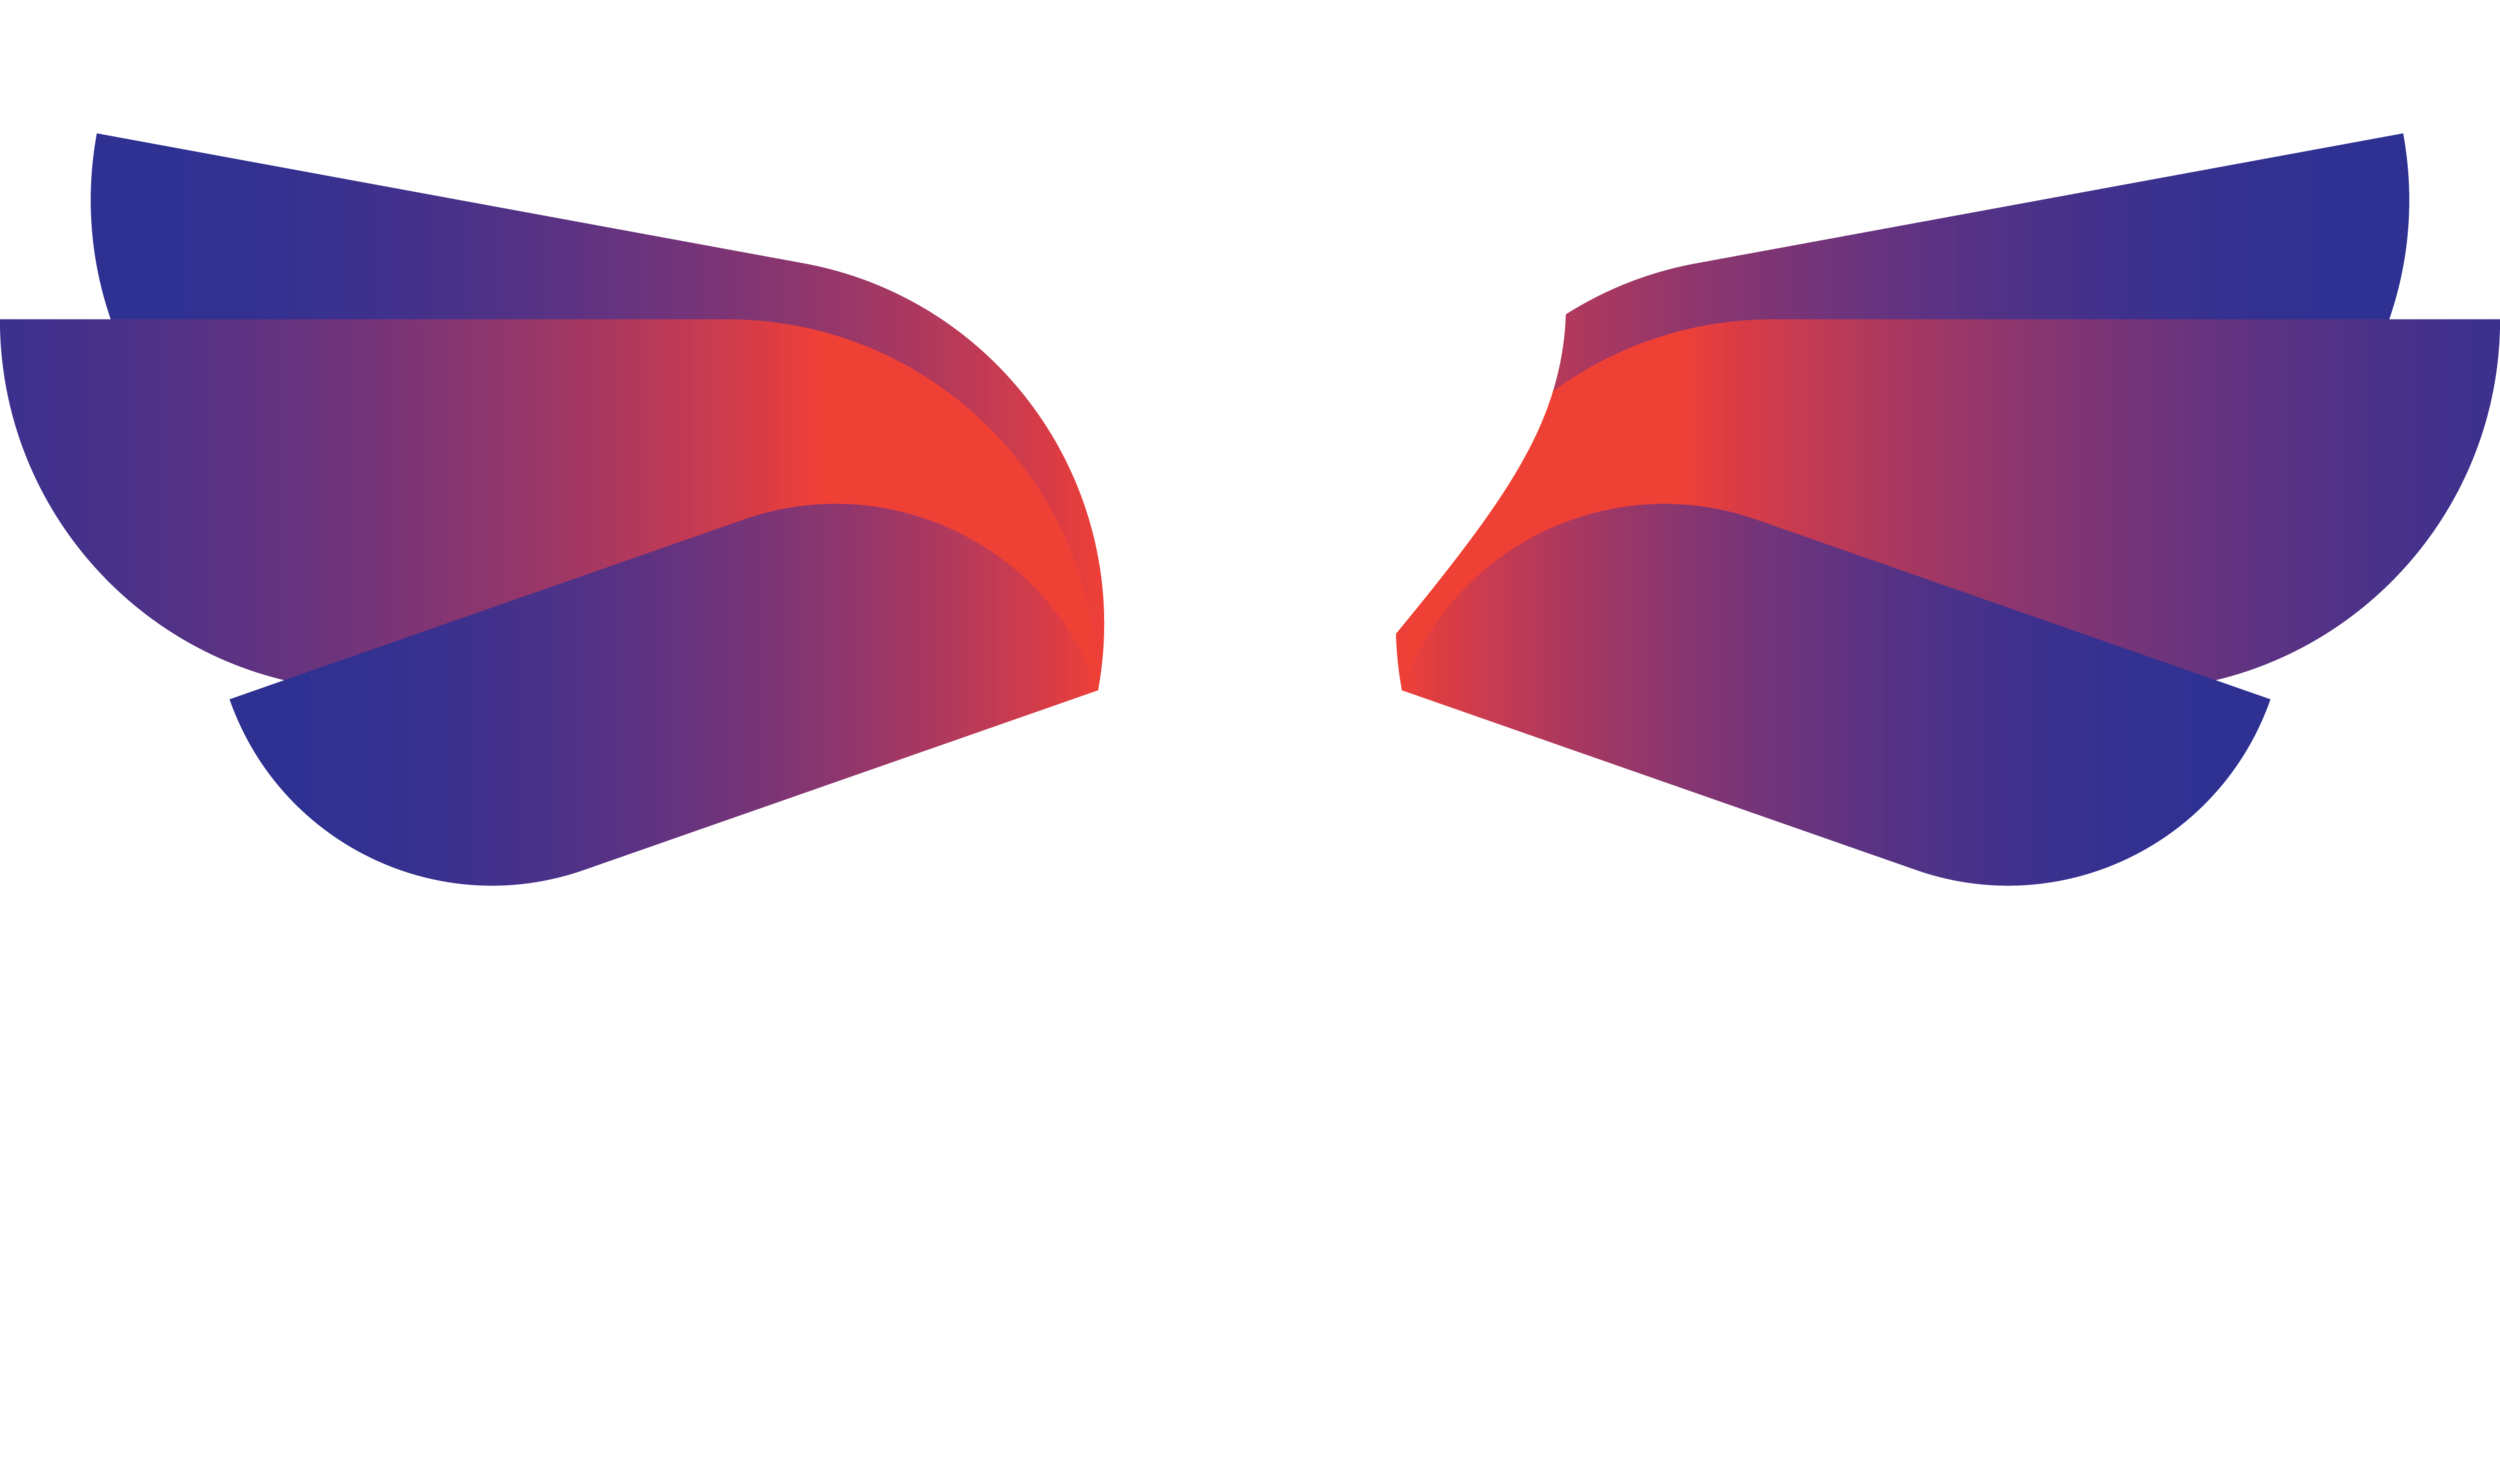 2.png